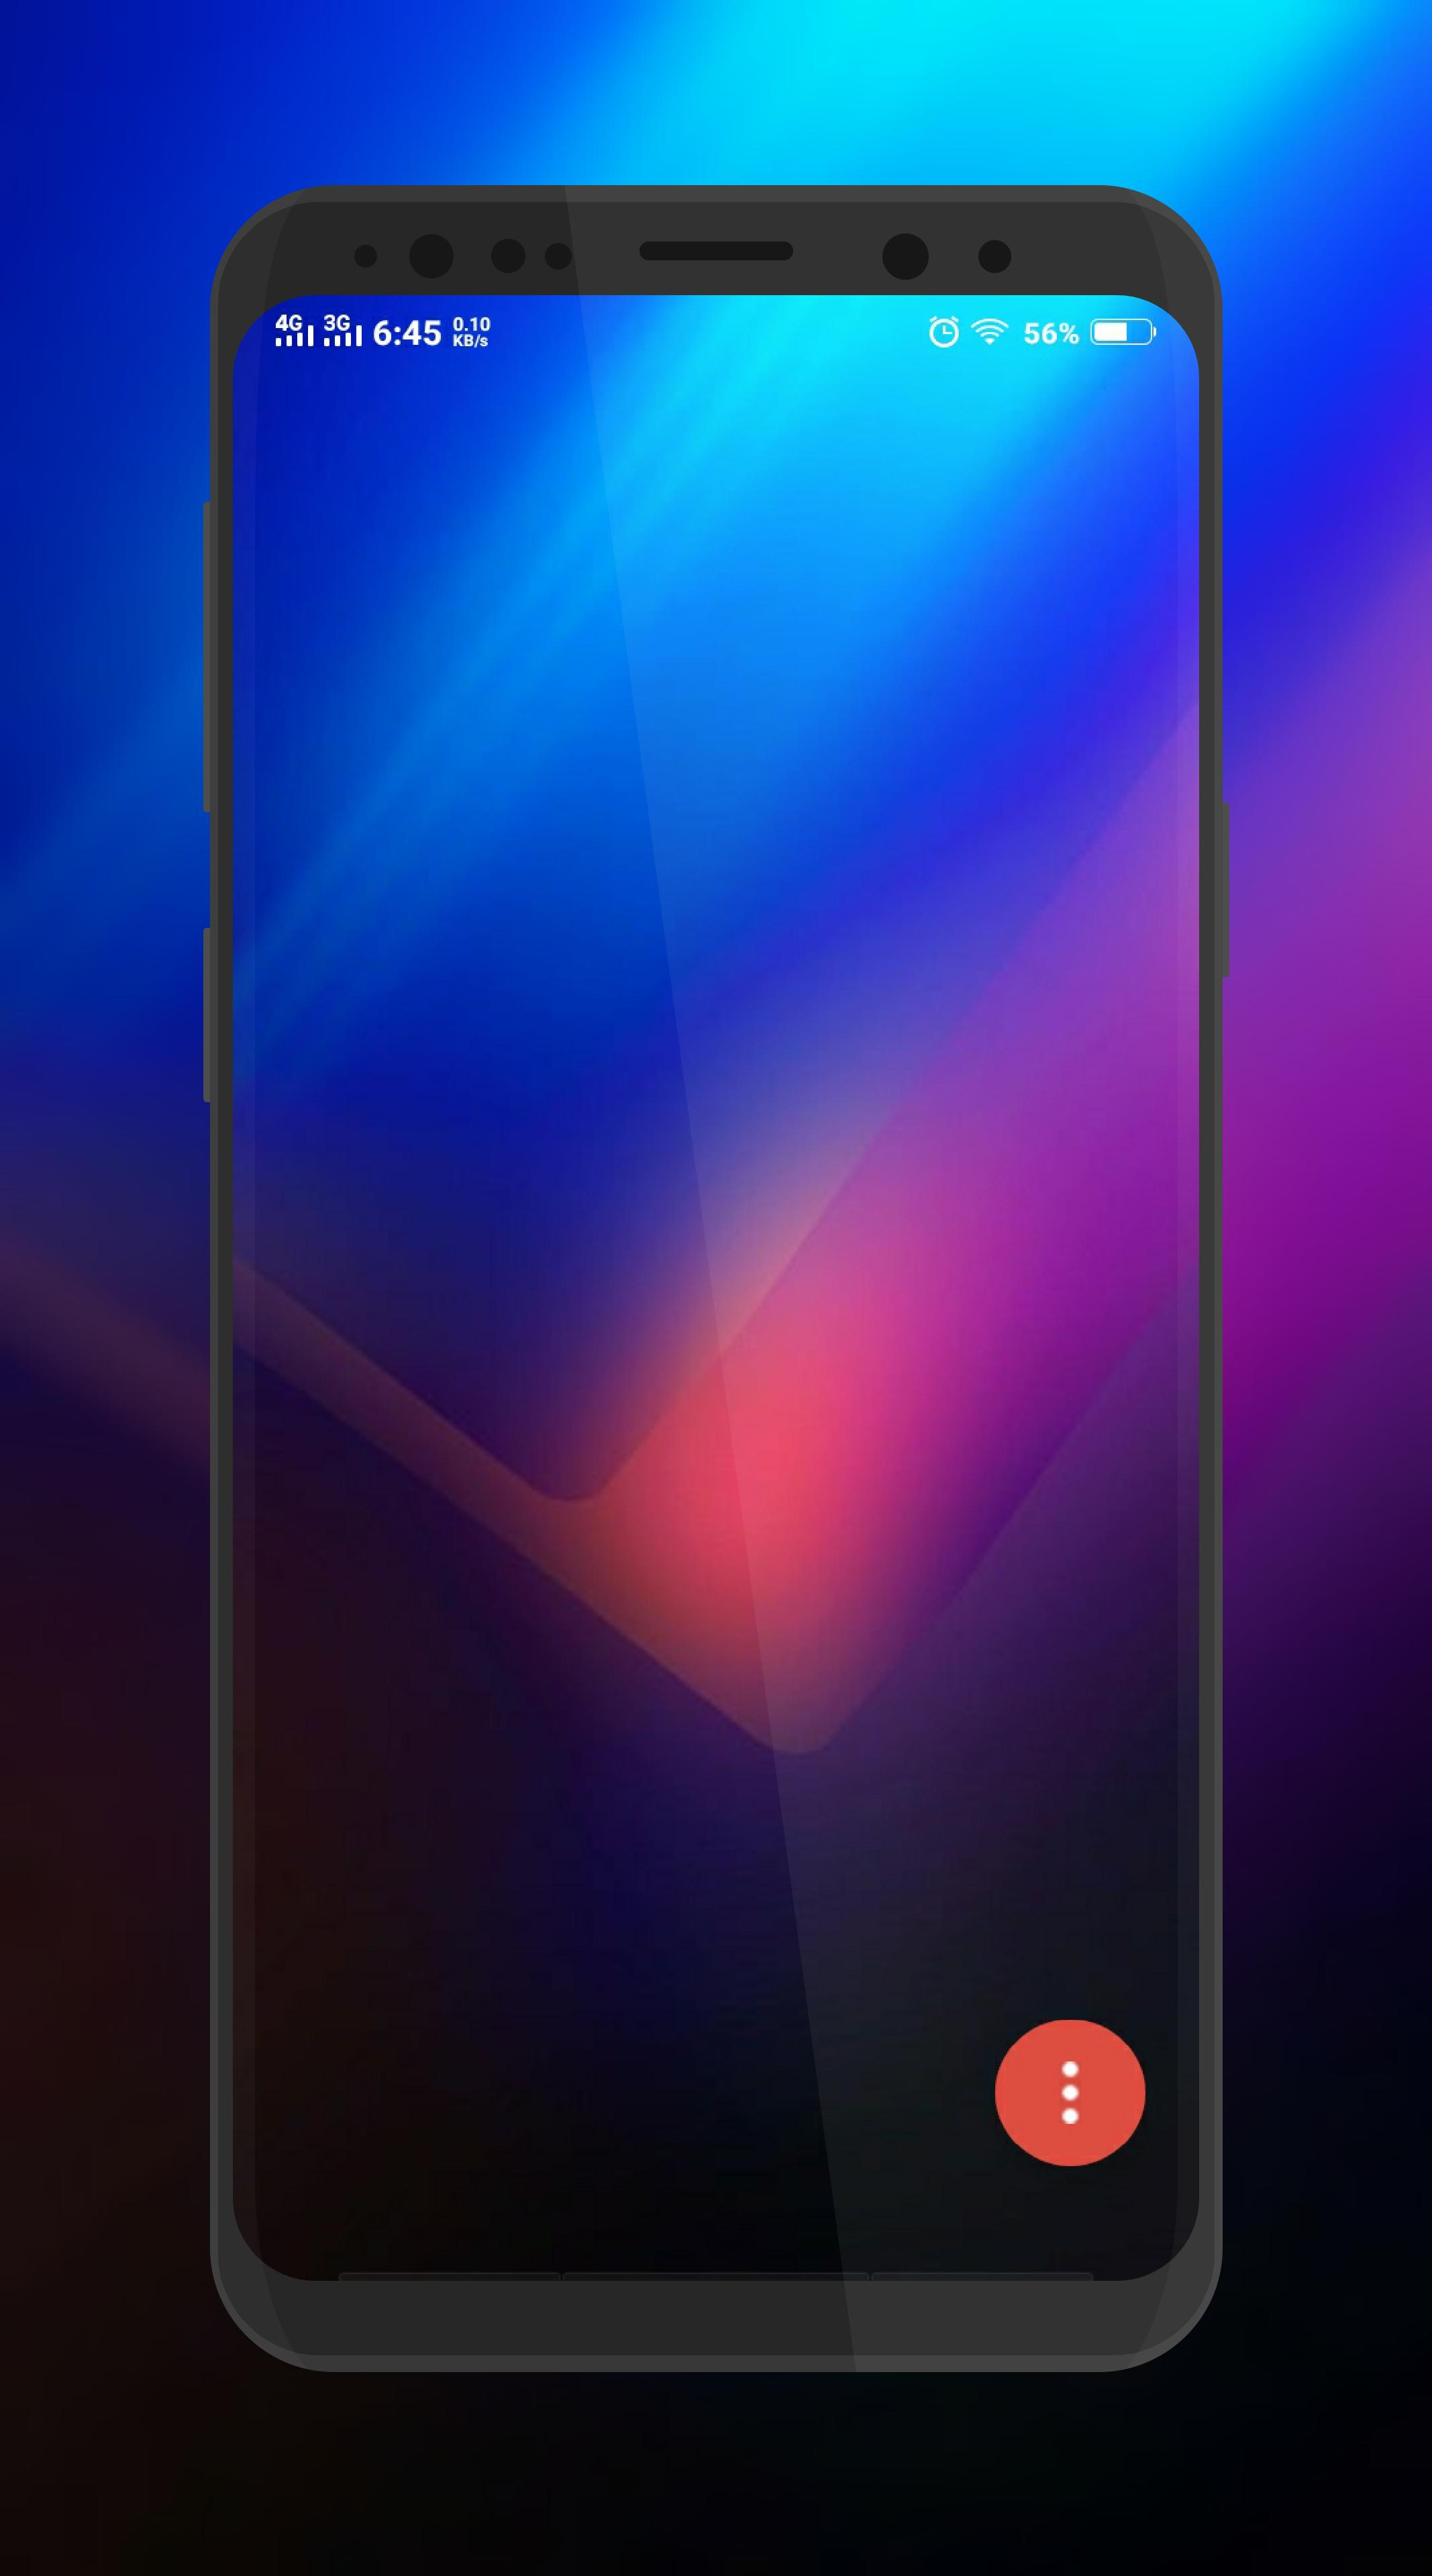 Full Hd Redmi 8 Wallpaper - Phone Reviews, News, Opinions ...